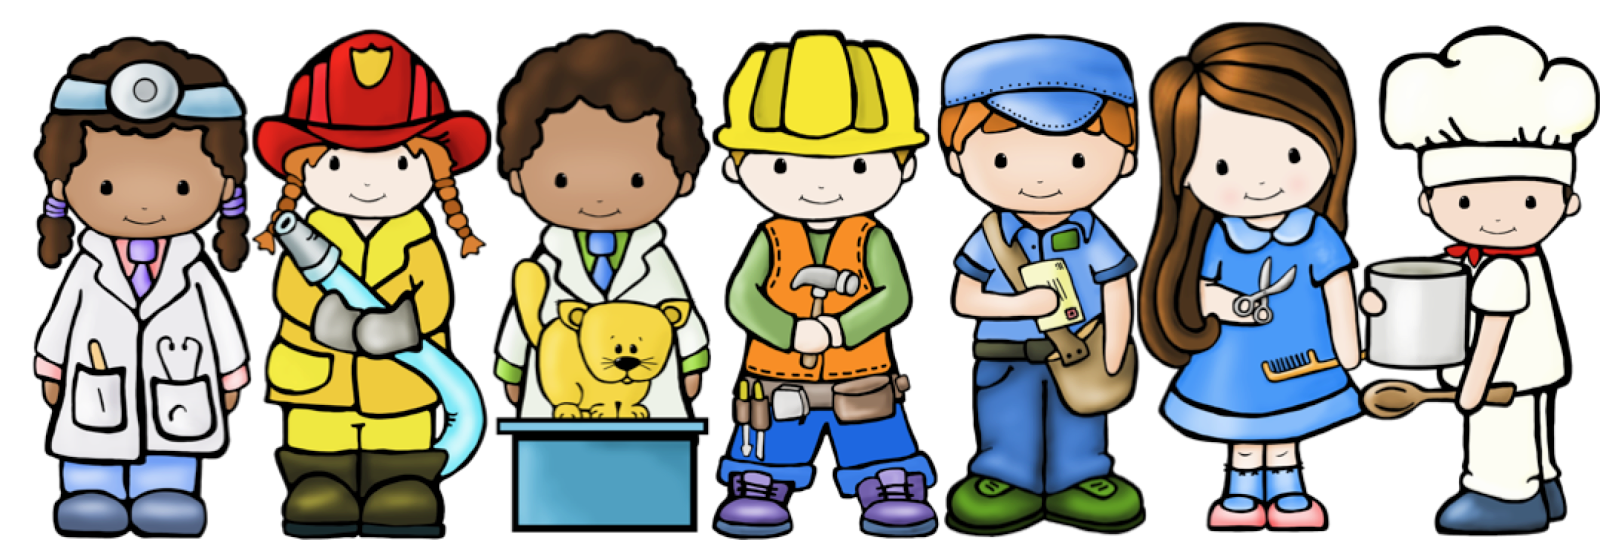 Community helpers clipart free images